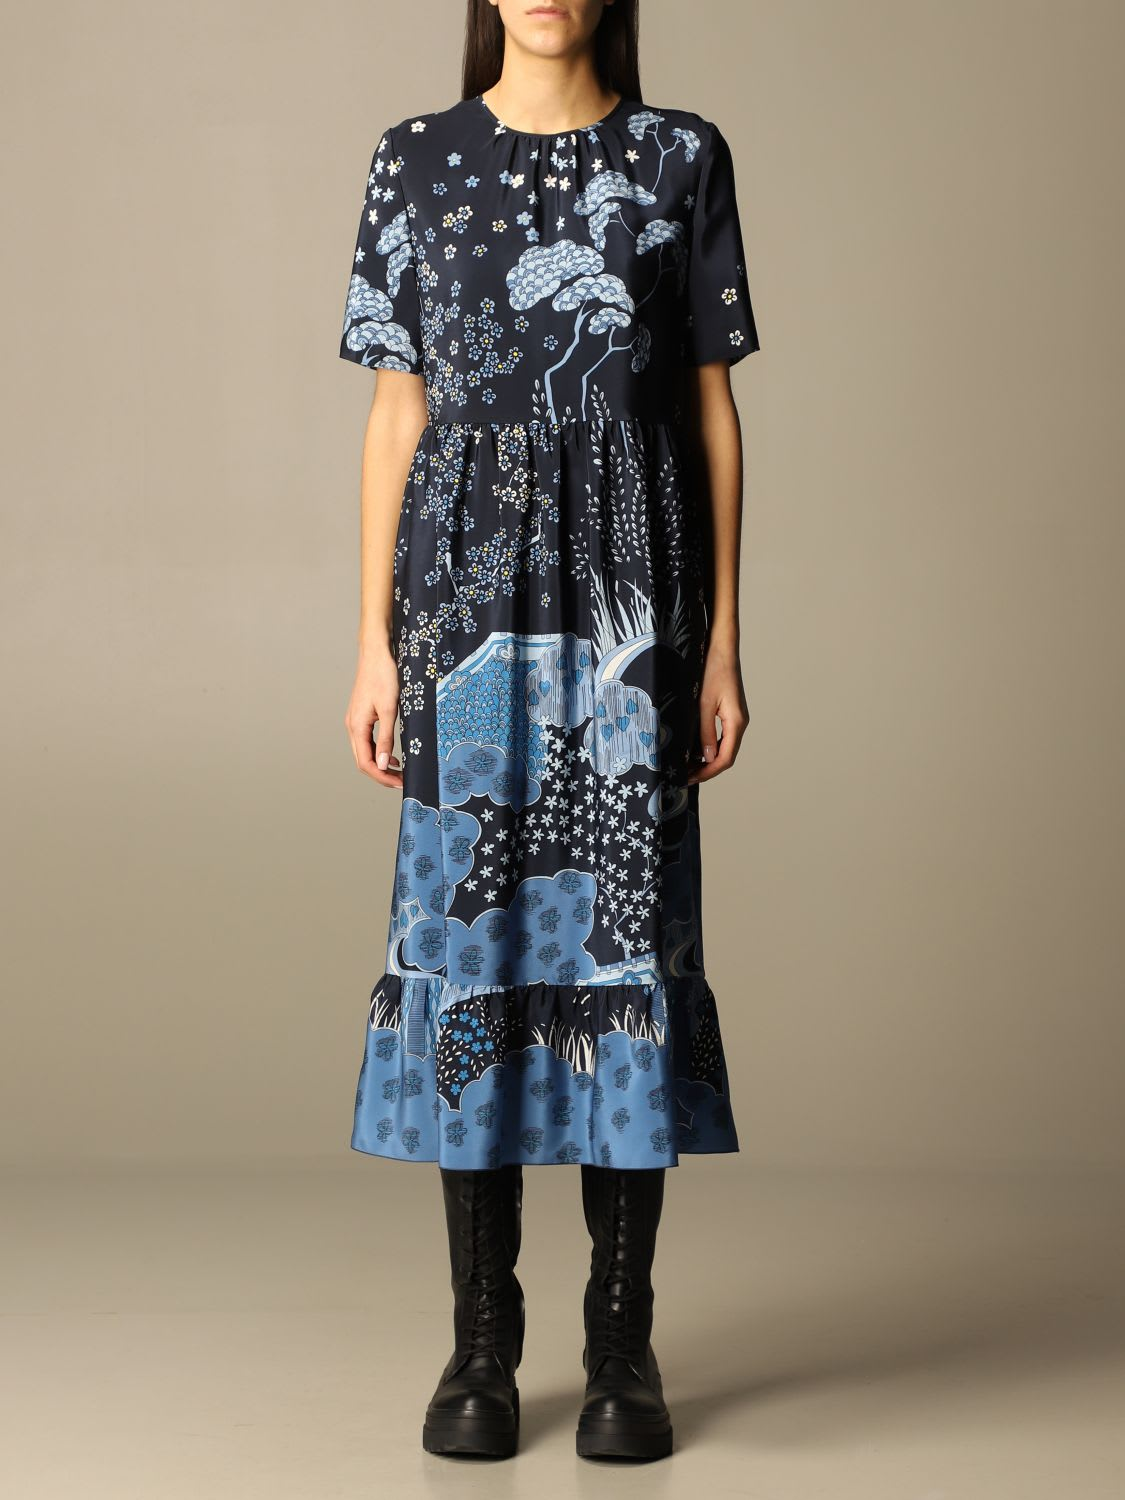 Red Valentino Dress Red Valentino Midi Dress In Floral Patterned Silk